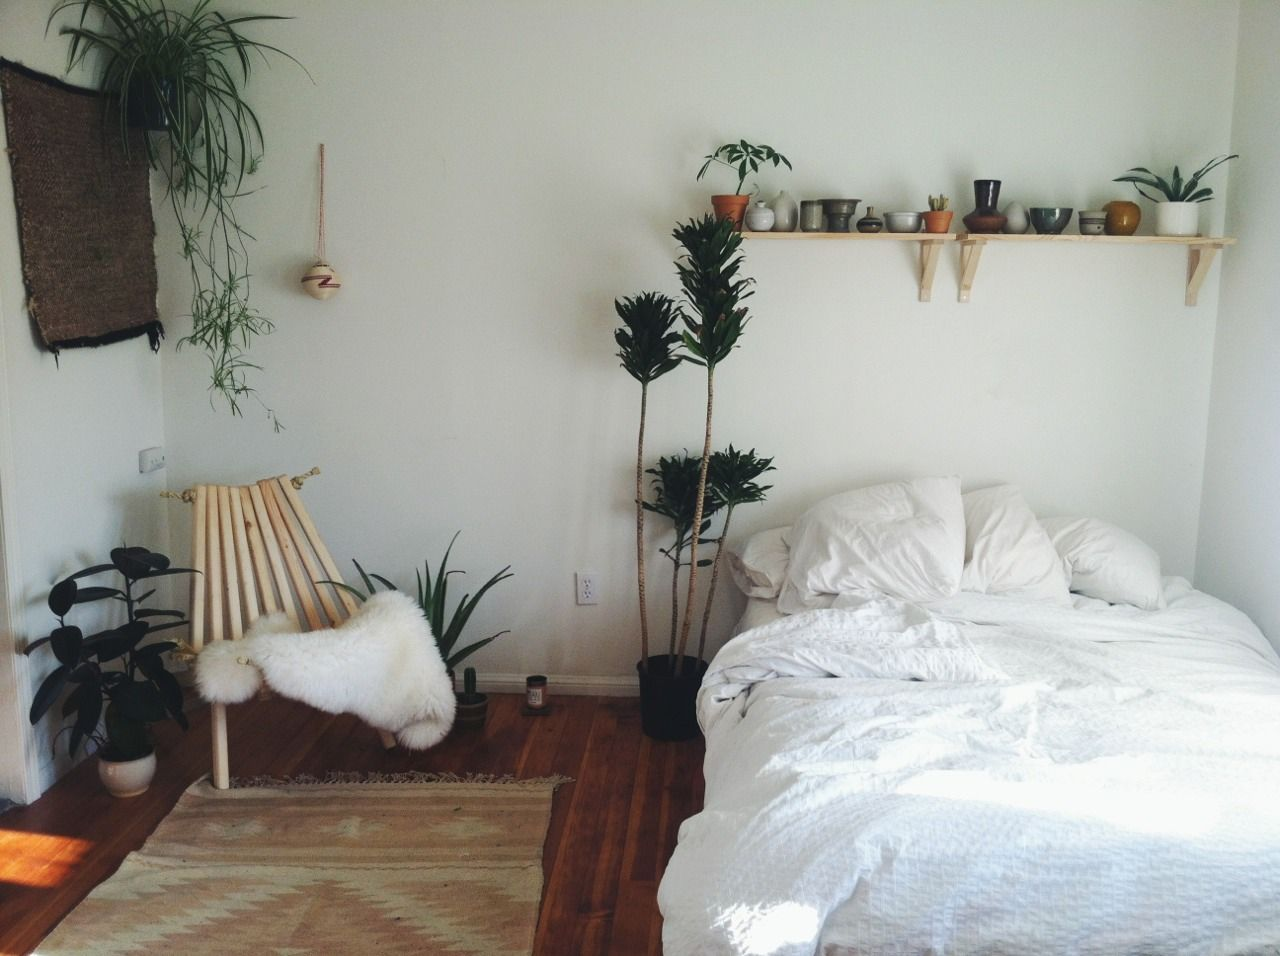 White bedroom with plants tumblr - I D Love This With Fake Plants Plants Bugs And I Can T Stand Sharing My Living Space With Bugs Especially Where I Sleep